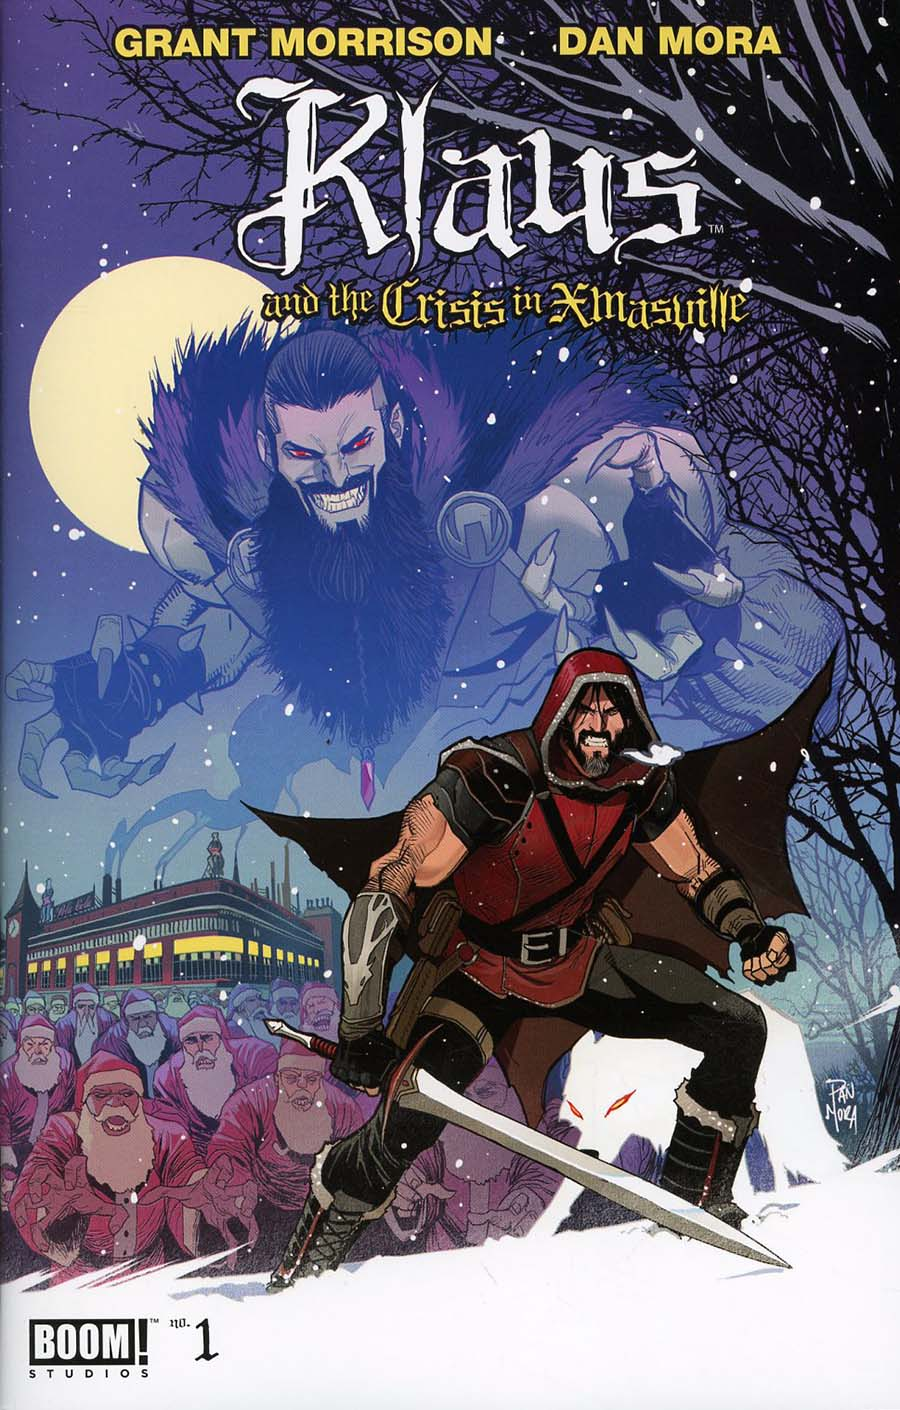 Klaus And The Crisis In Xmasville #1 Cover A Regular Dan Mora Cover